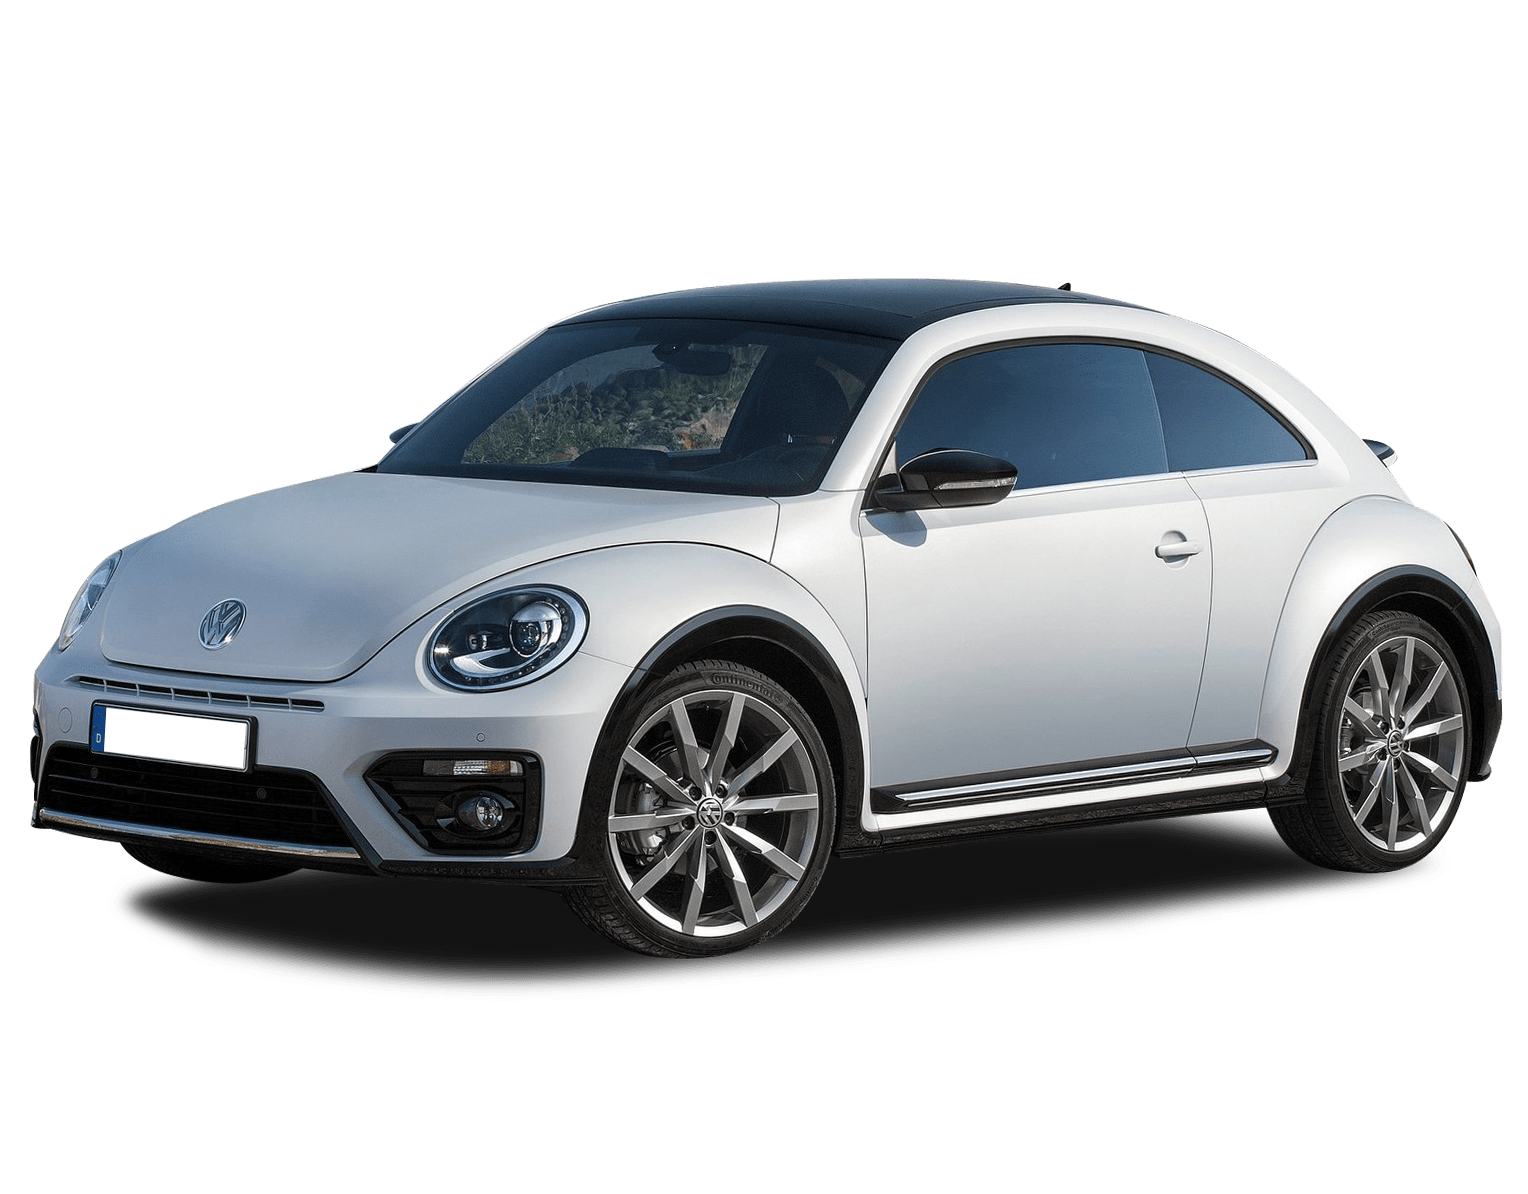 Volkswagen Beetle Review For Sale Price Models Specs In Australia Carsguide